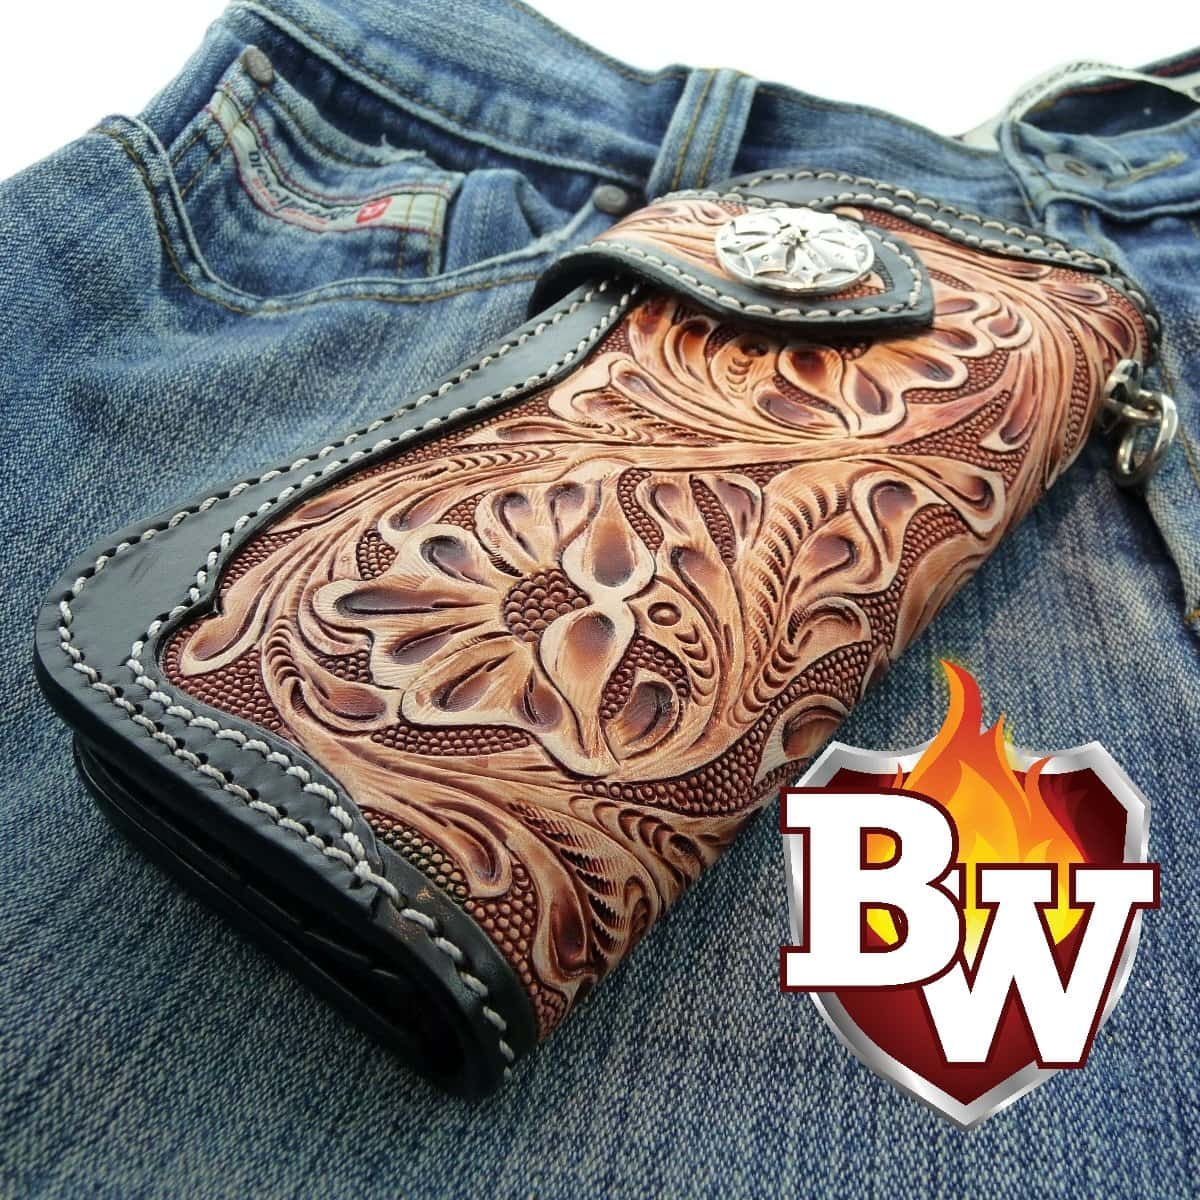 Western Rider 8 Leather Men's Biker Wallet - Handcrafted Quality Genine Leather Backed by a 5-Year Warranty - Biker-Wallets.com